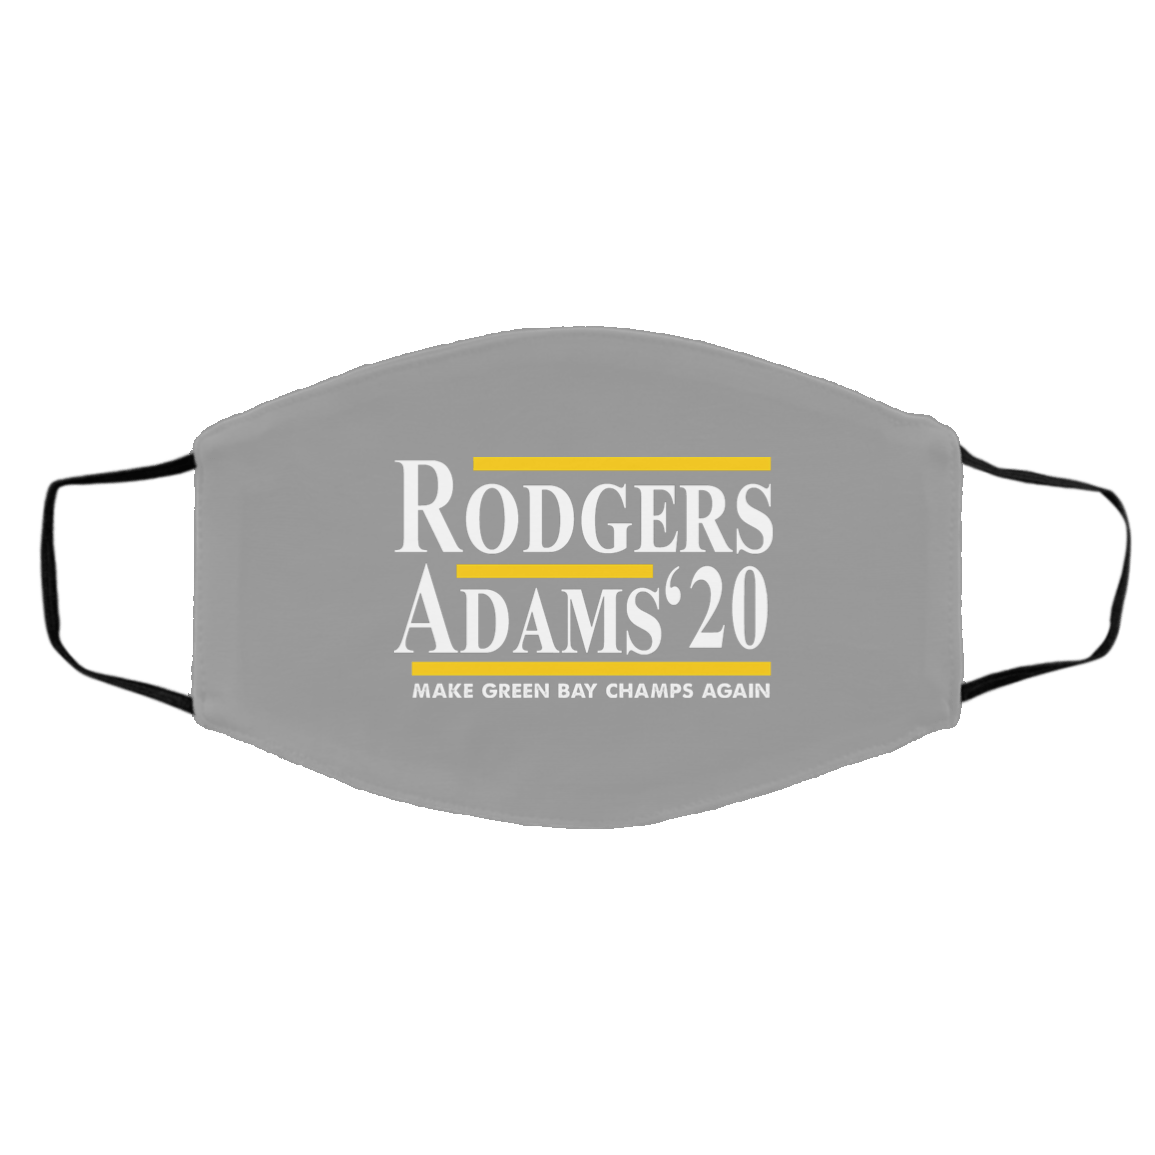 Rodgers Adam's 2020 Make Green Bay Champs Again Face Mask 1274-13179-91587535-59067 - Tee Ript